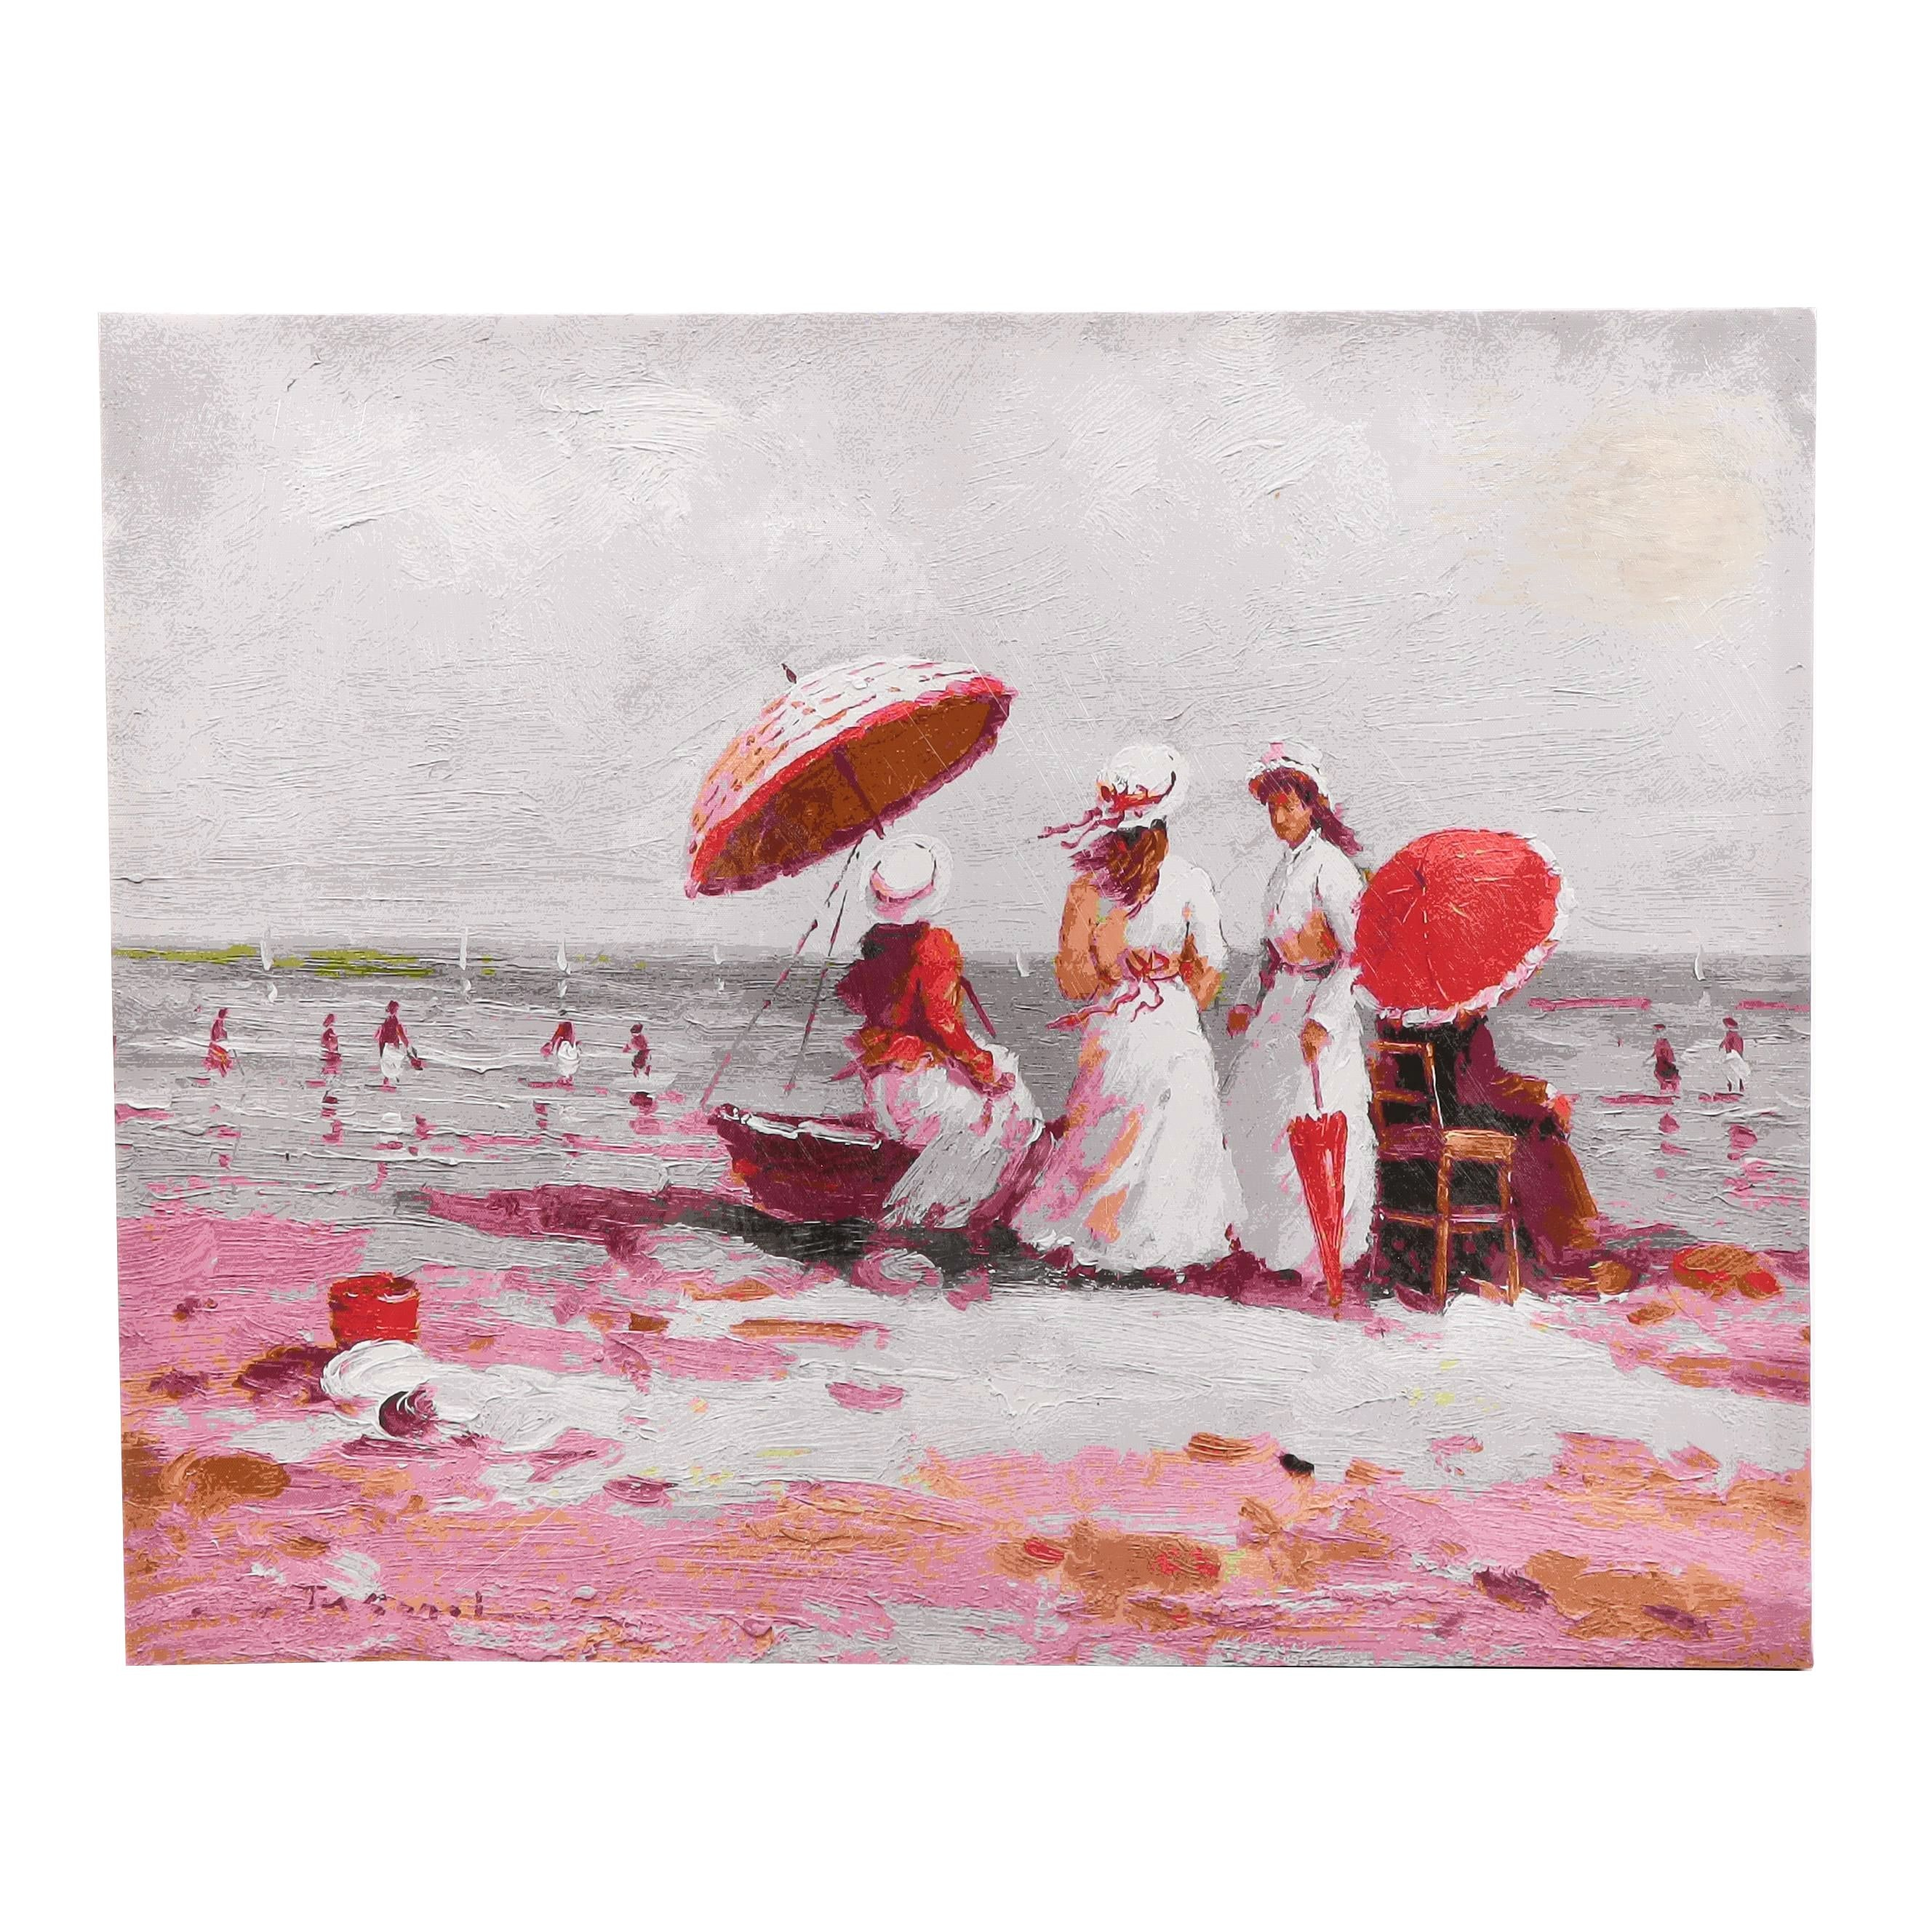 Contemporay Giclee Print of Victorian Era Women at Beach